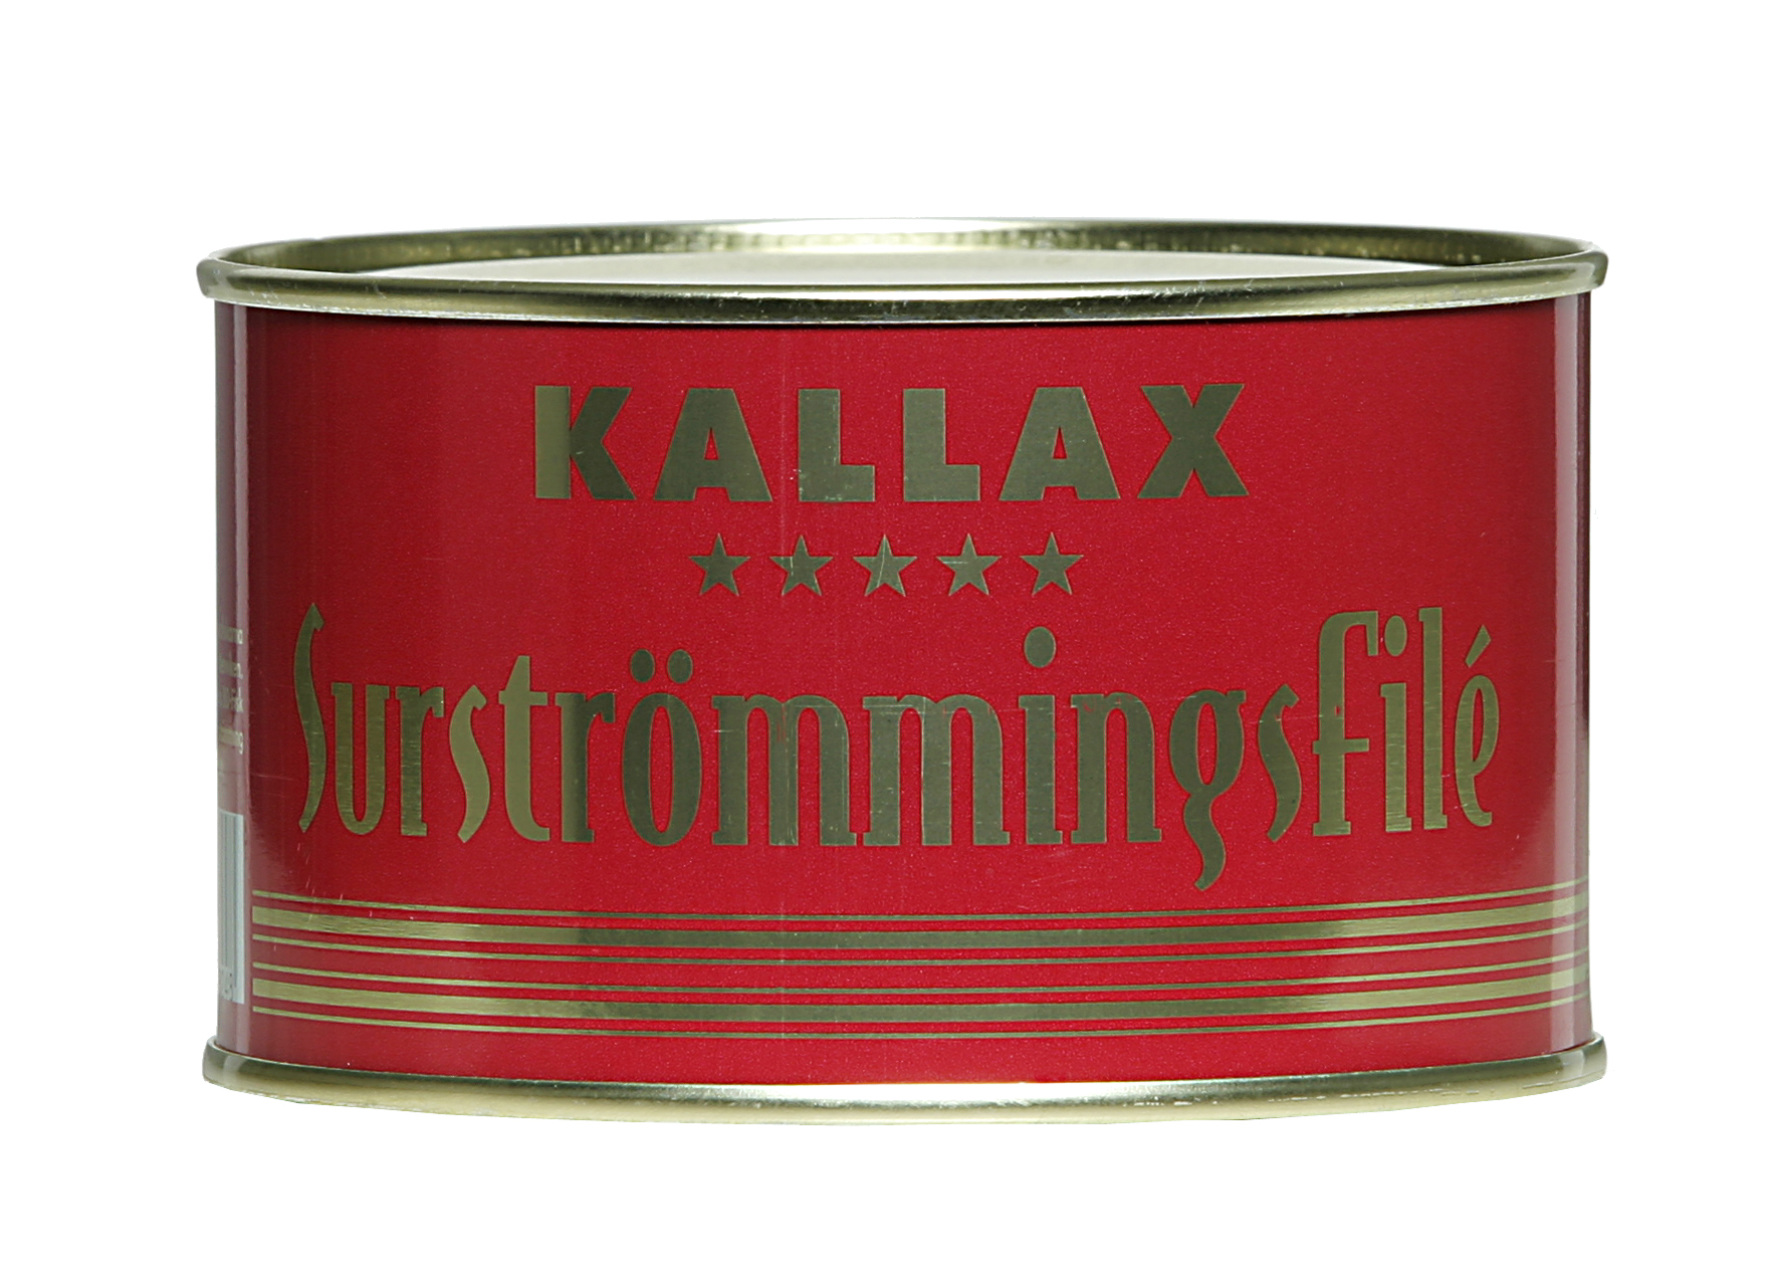 Surströmming Australia Surströmming Made In Scandinavian